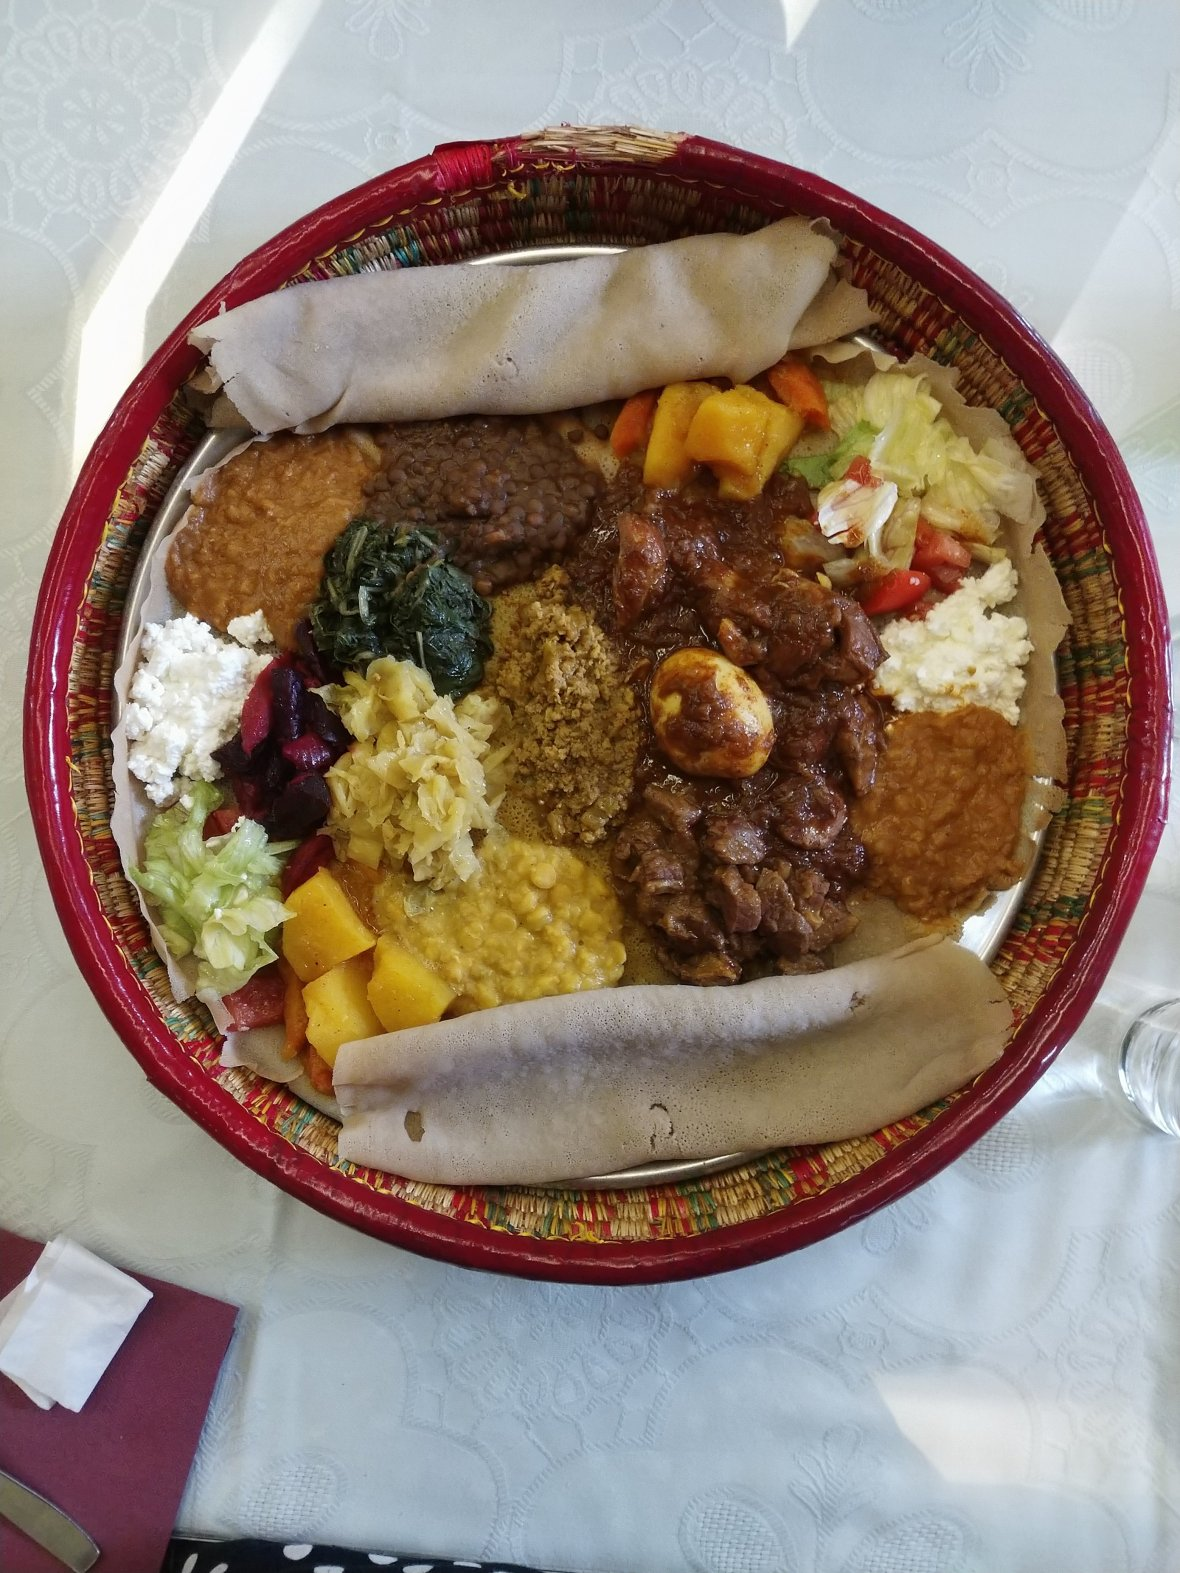 Injera bread and Ethiopian dishes